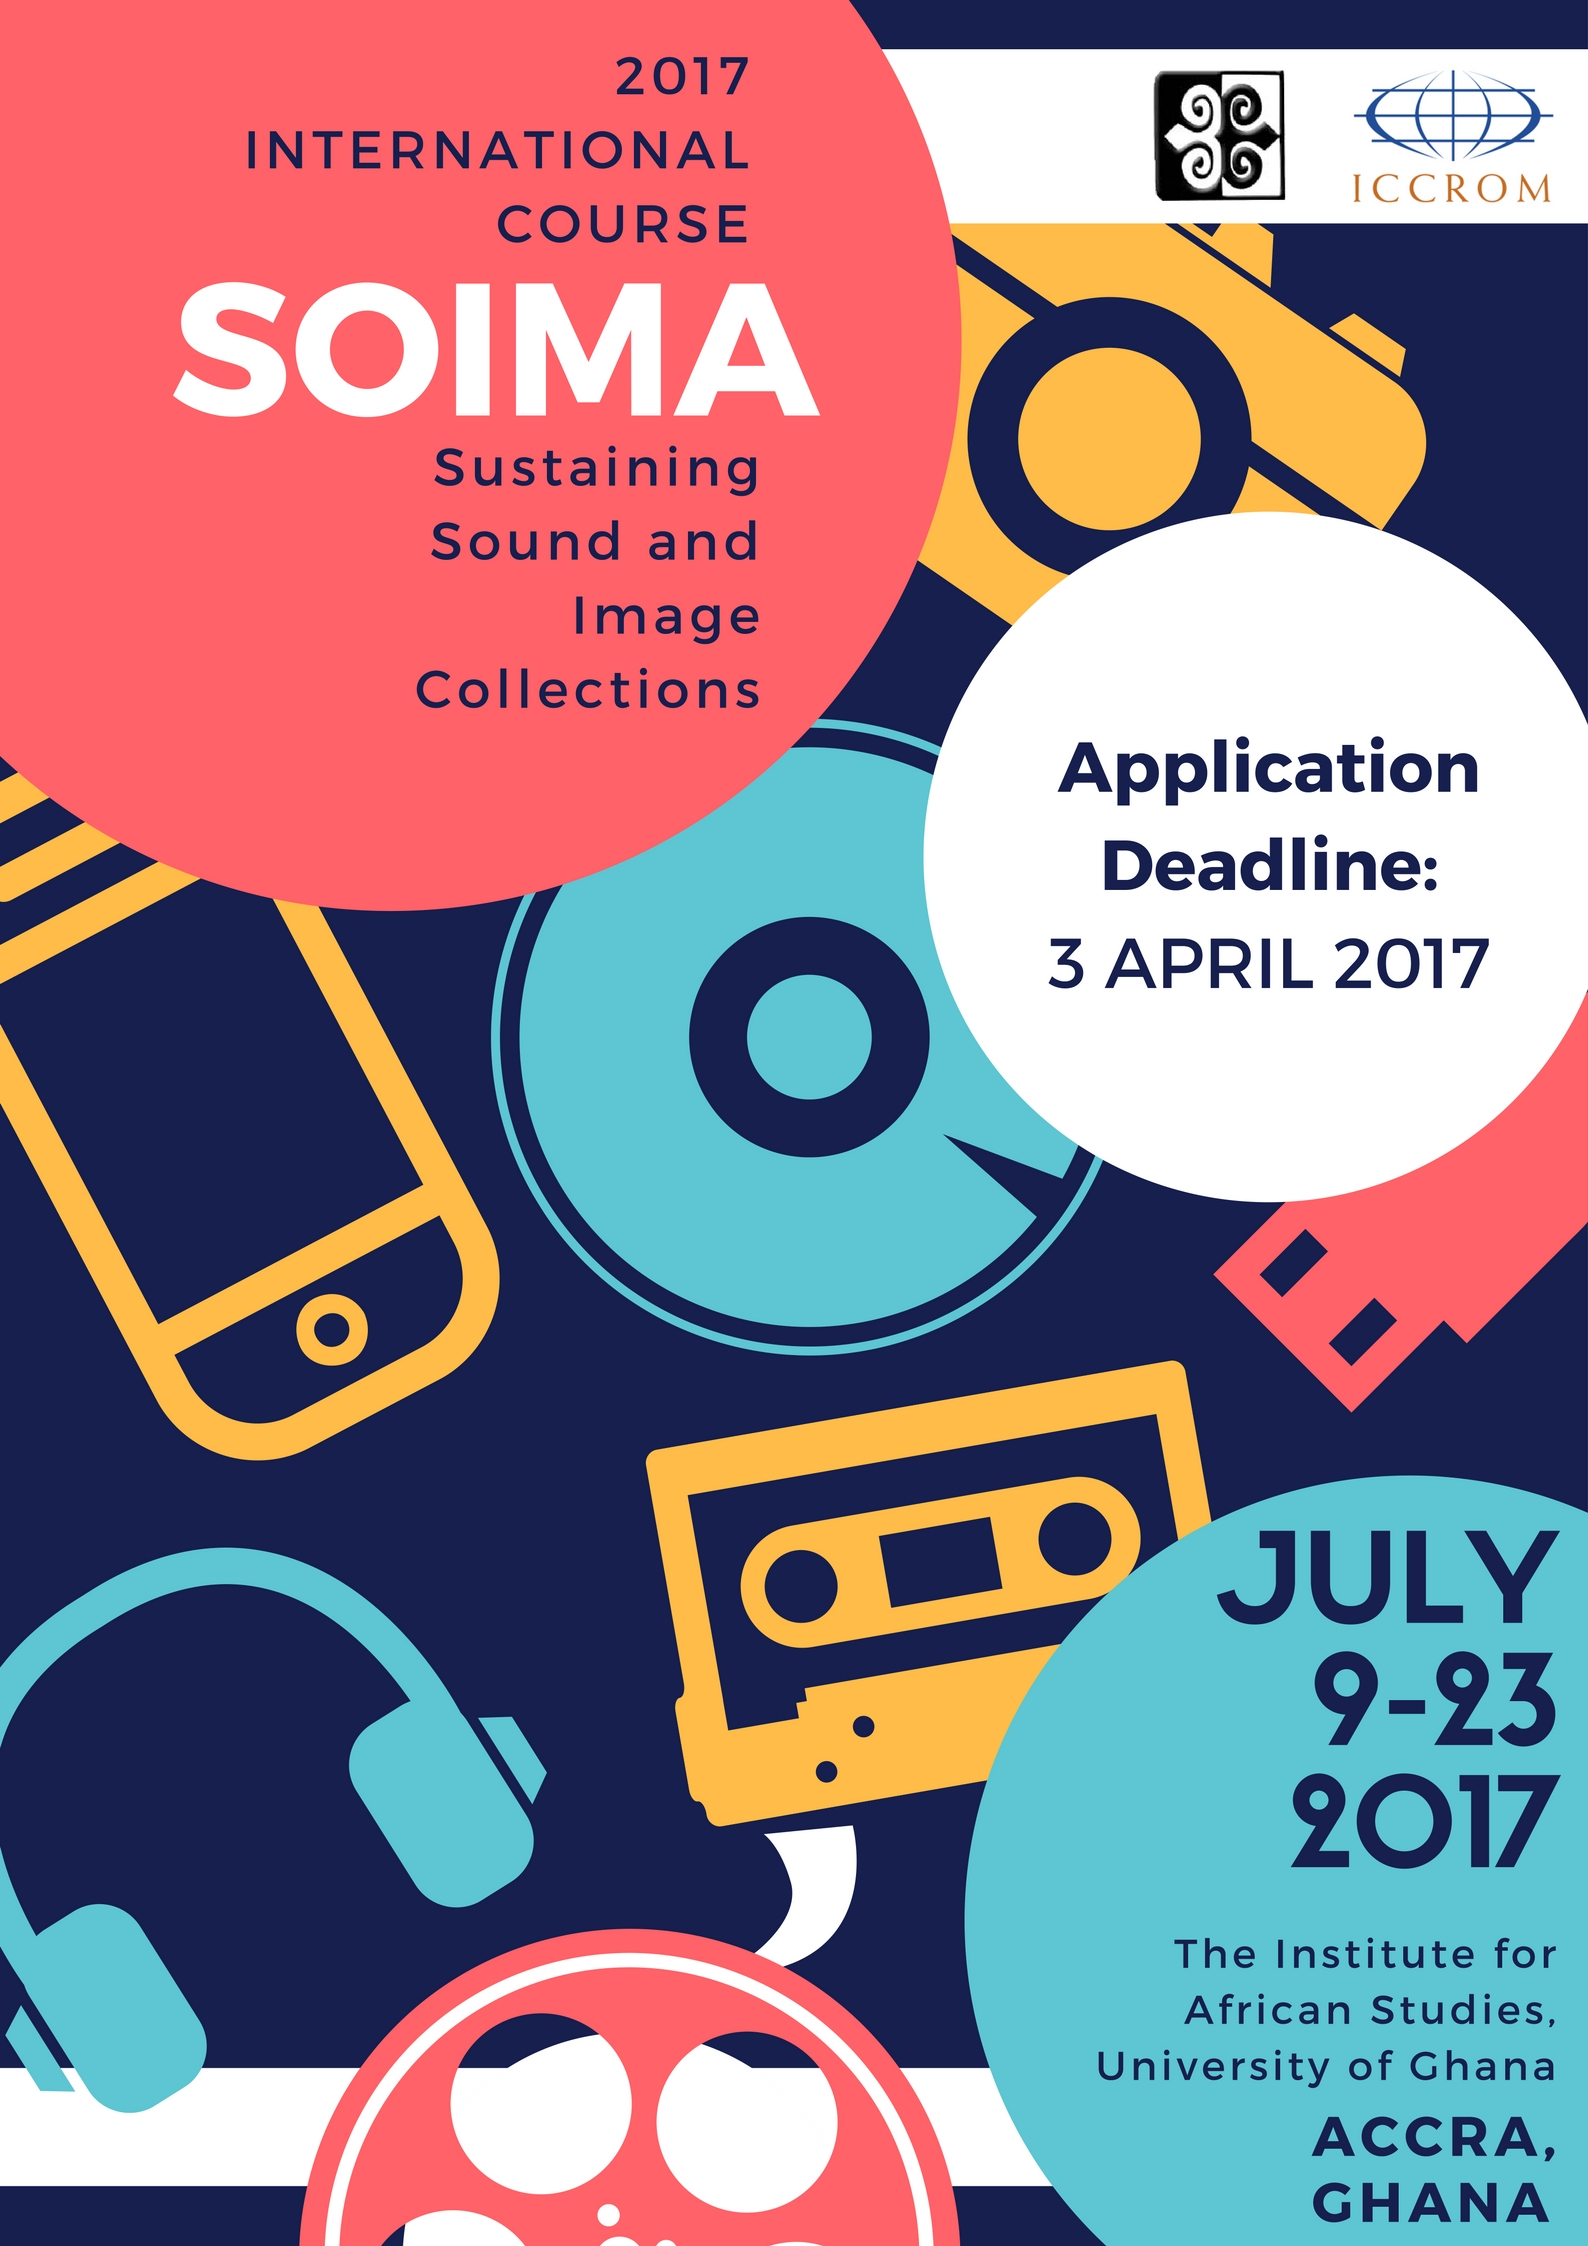 fiat ifta soima international course application deadline to apply applicants should send their completed form a completed personal statement to soima2017 iccrom org